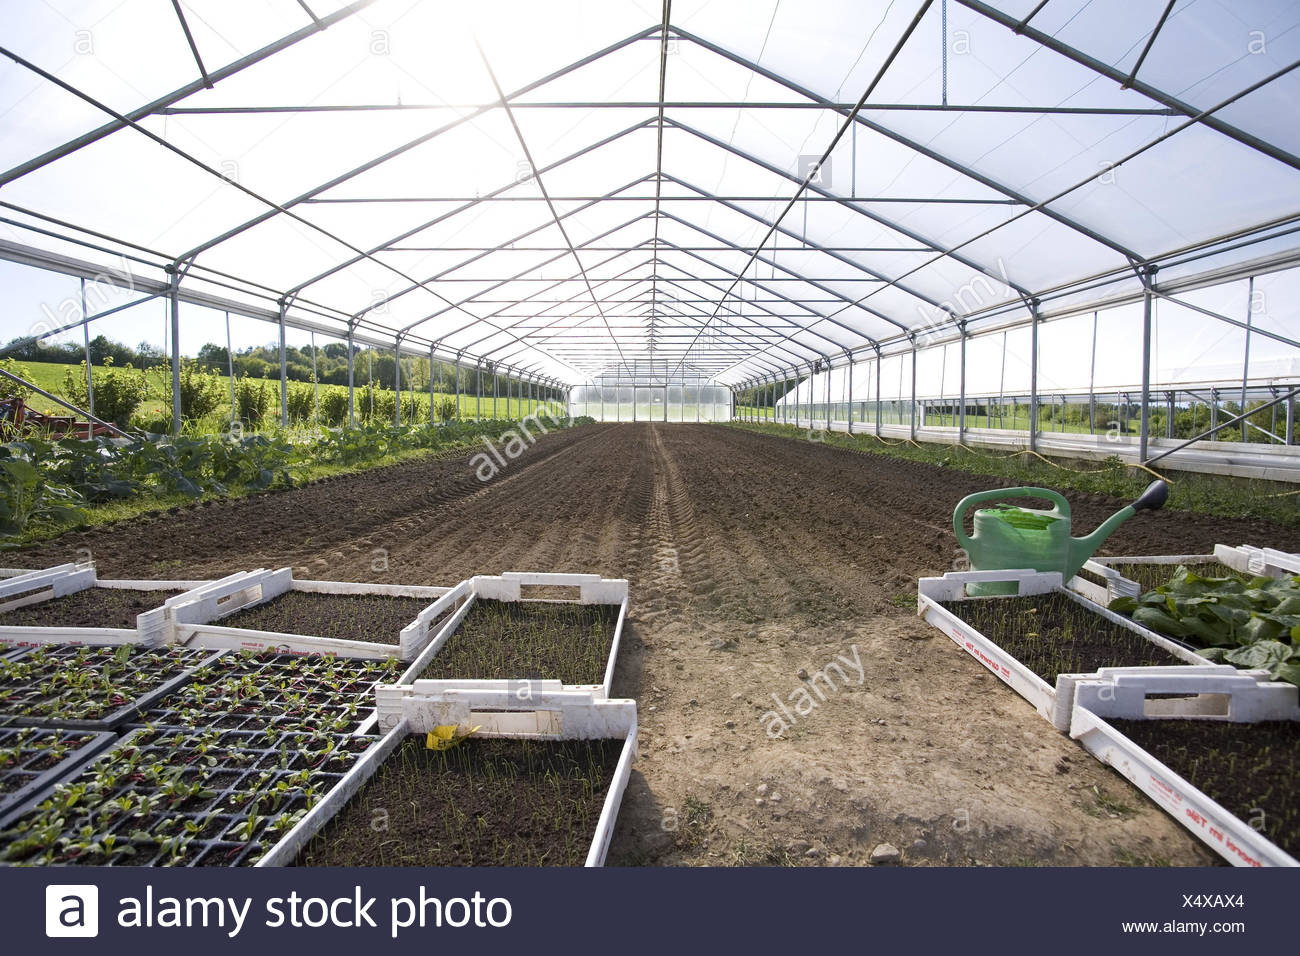 Greenhouse, inside, hothouse, market garden, cultivation, cultivation, plants, vegetables, vegetable plants, the sun, growth, brightly, sunny, flooded with light, protected, greenhouse, roofs, watering can, solar irradiation, Setzlinge, cast, grow, - Stock Image